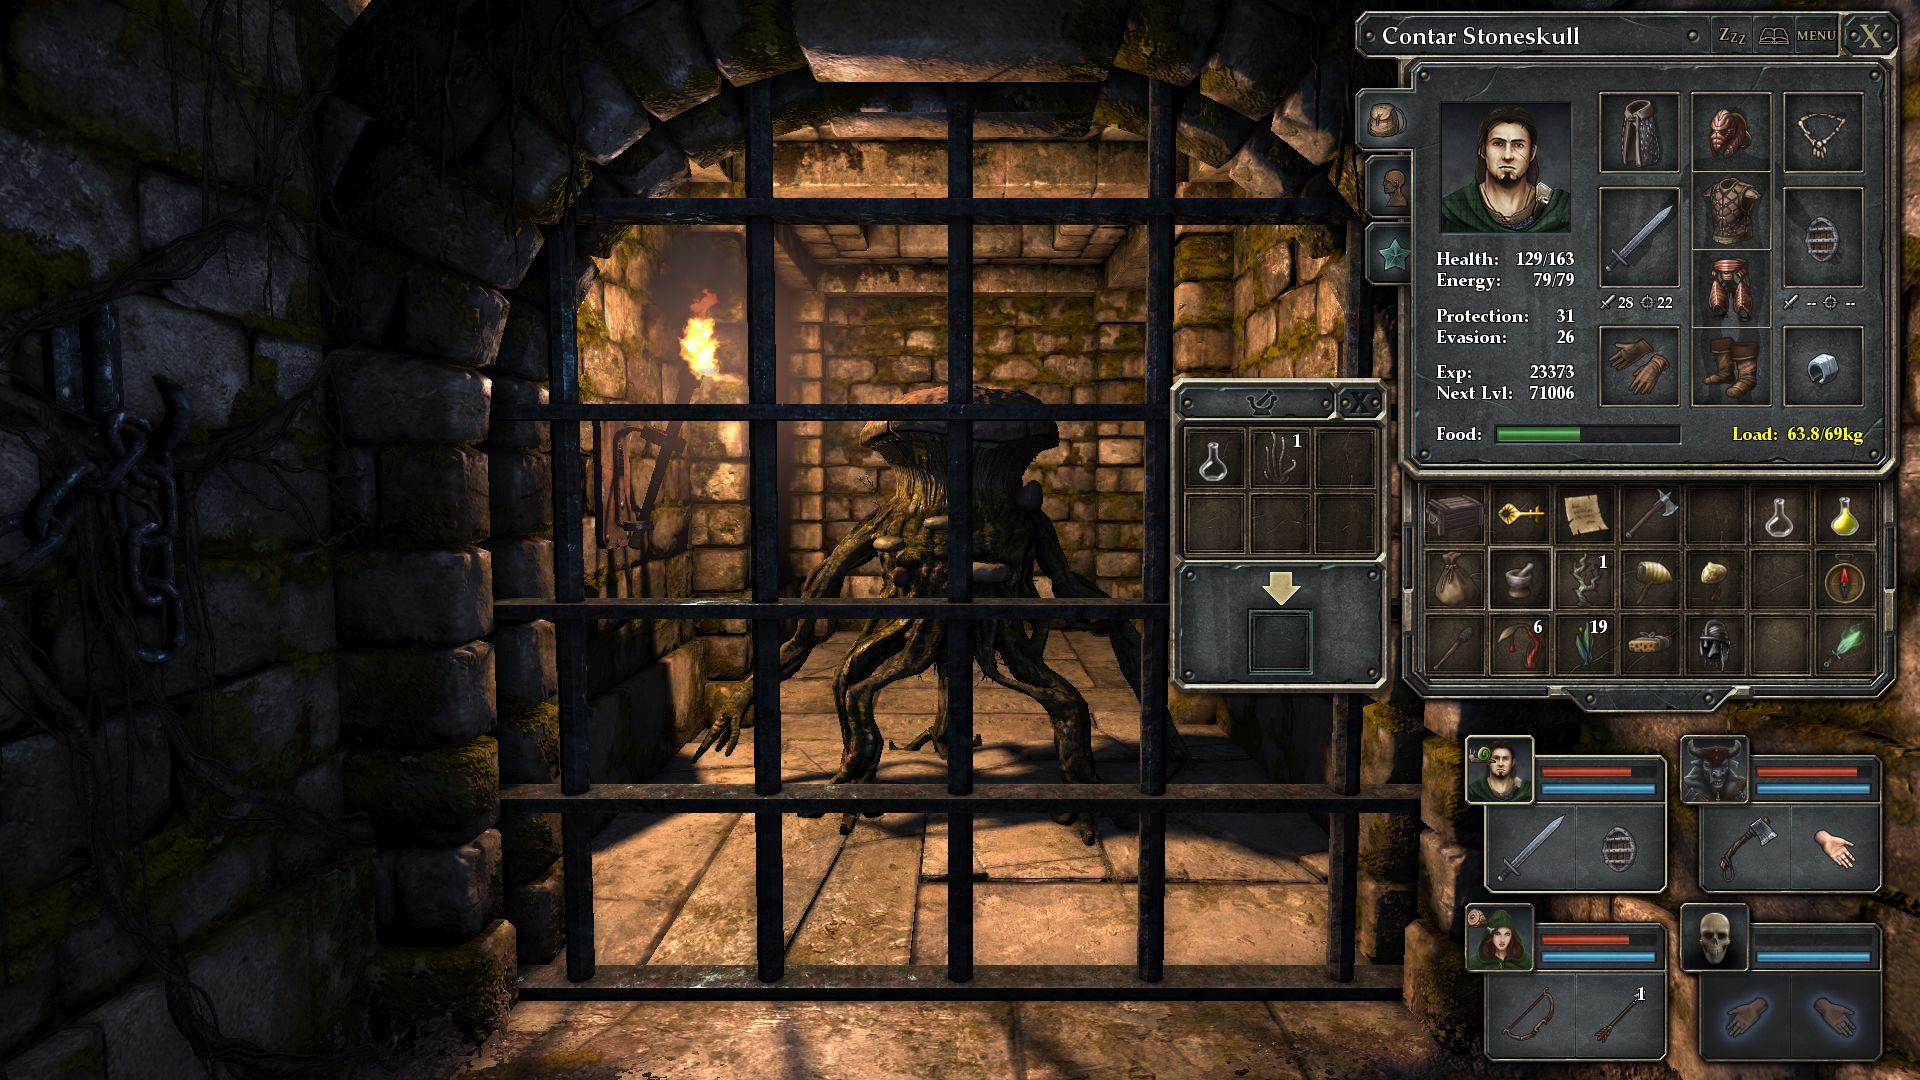 Legend_of_Grimrock_screenshot_01